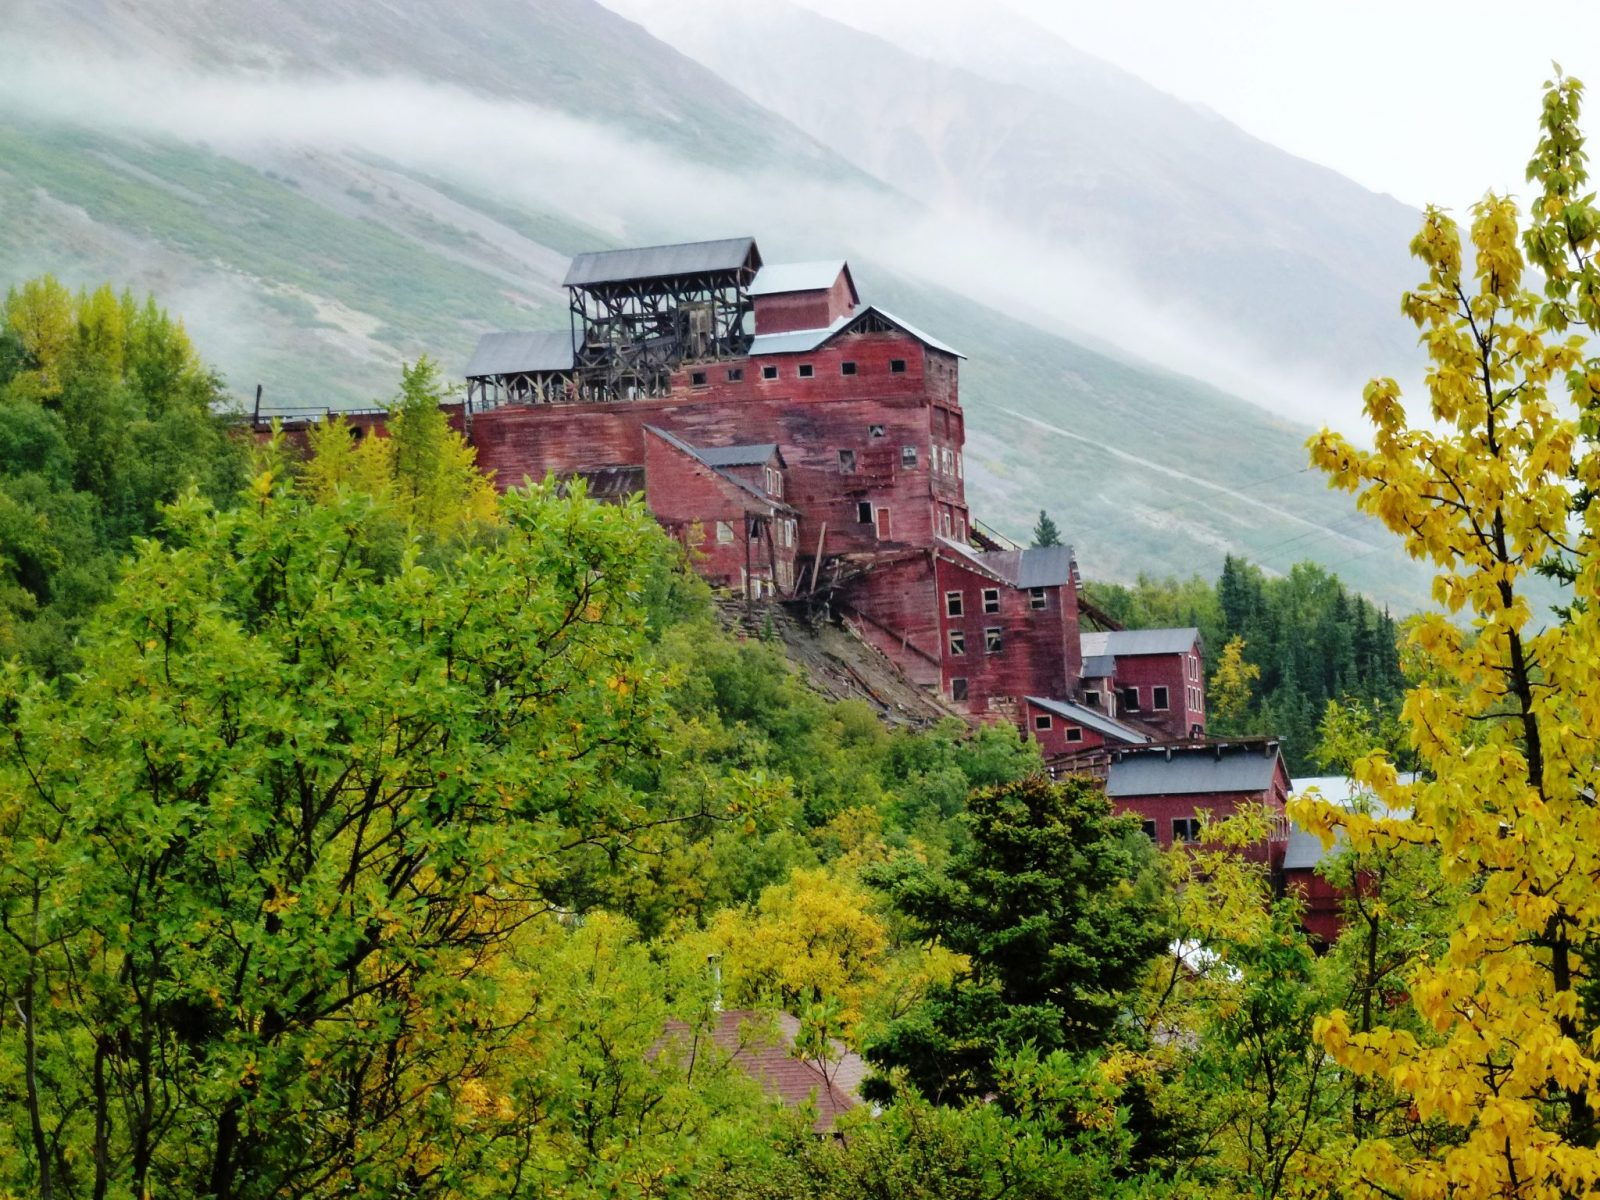 A ruined large wooden structure, the historic Kennicott mine is built into a hillside. The building is painted red with a black roof. There are trees in the foreground and a mountain in the background in Wrangell-St Elias National Park in Alaska